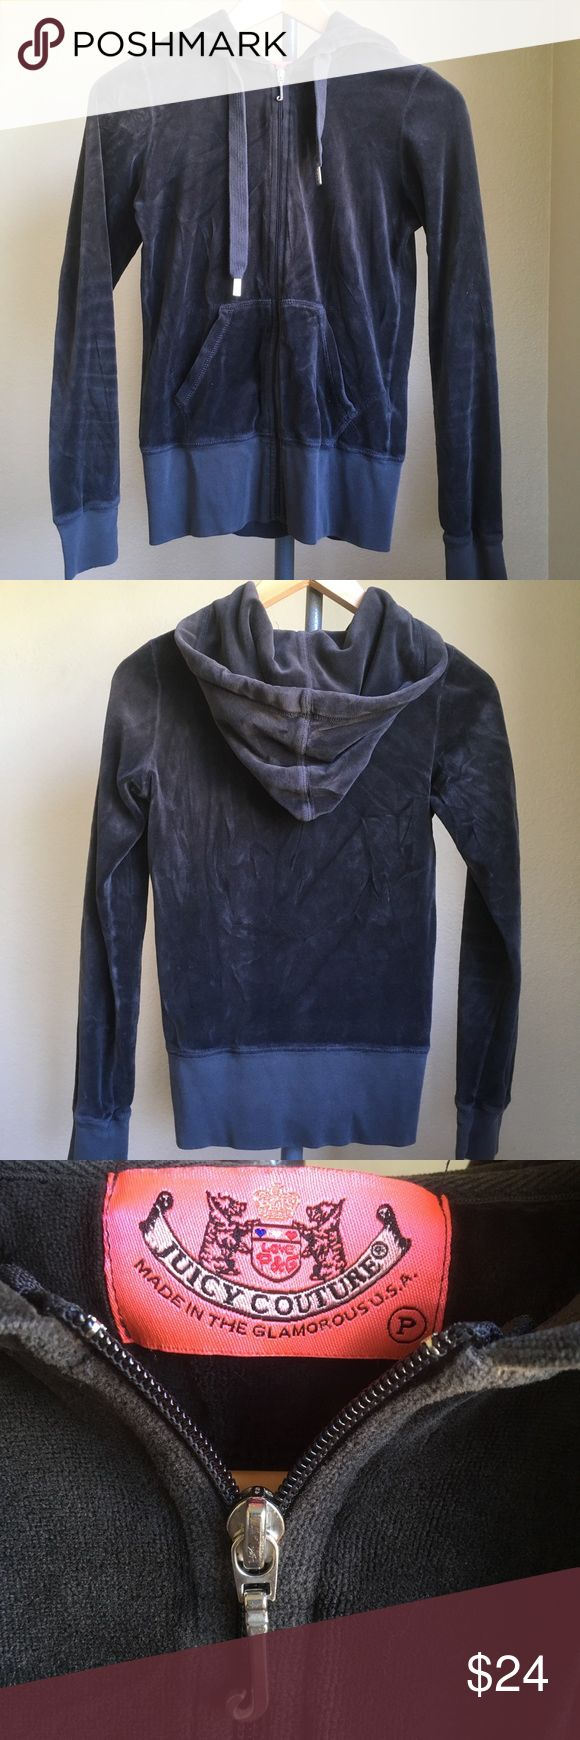 "Juicy Couture Hooded Sweatshirt Juicy Couture dark gray hooded zip up sweater. A soft and lush velvety feel. Petite size. It measures: 16"" from underarm to underarm, 23"" long from the shoulder down, and 23 1/2"" long sleeve. Like new, gently used. Juicy Couture Sweaters"